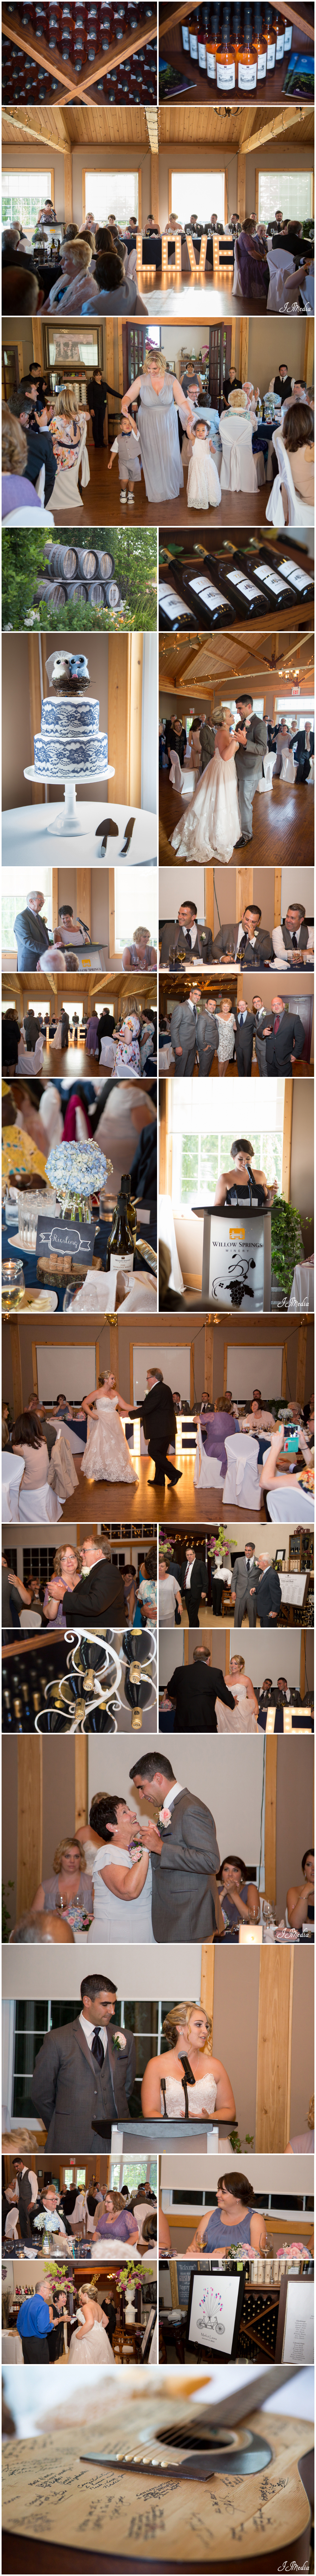 Willow_Springs_Winery_Wedding_JJMedia-10